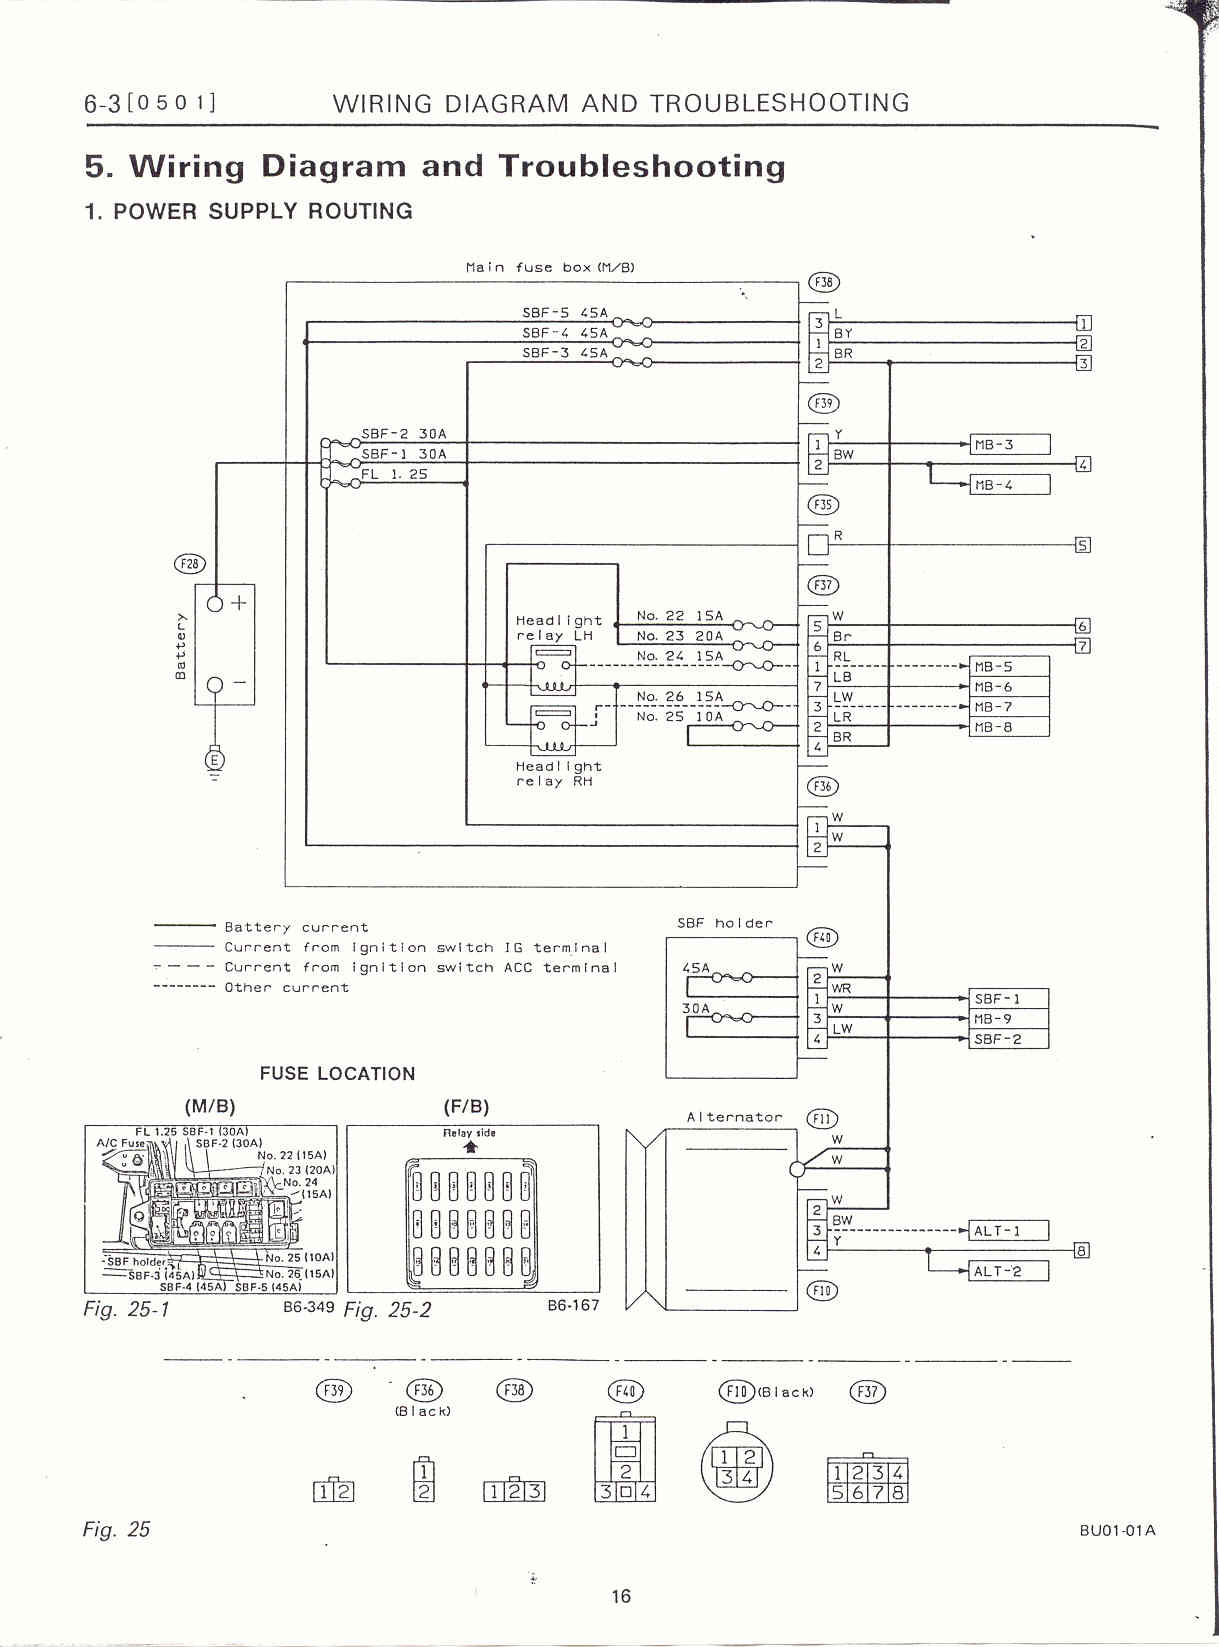 2002 subaru outback air conditioning wiring diagram Images Gallery